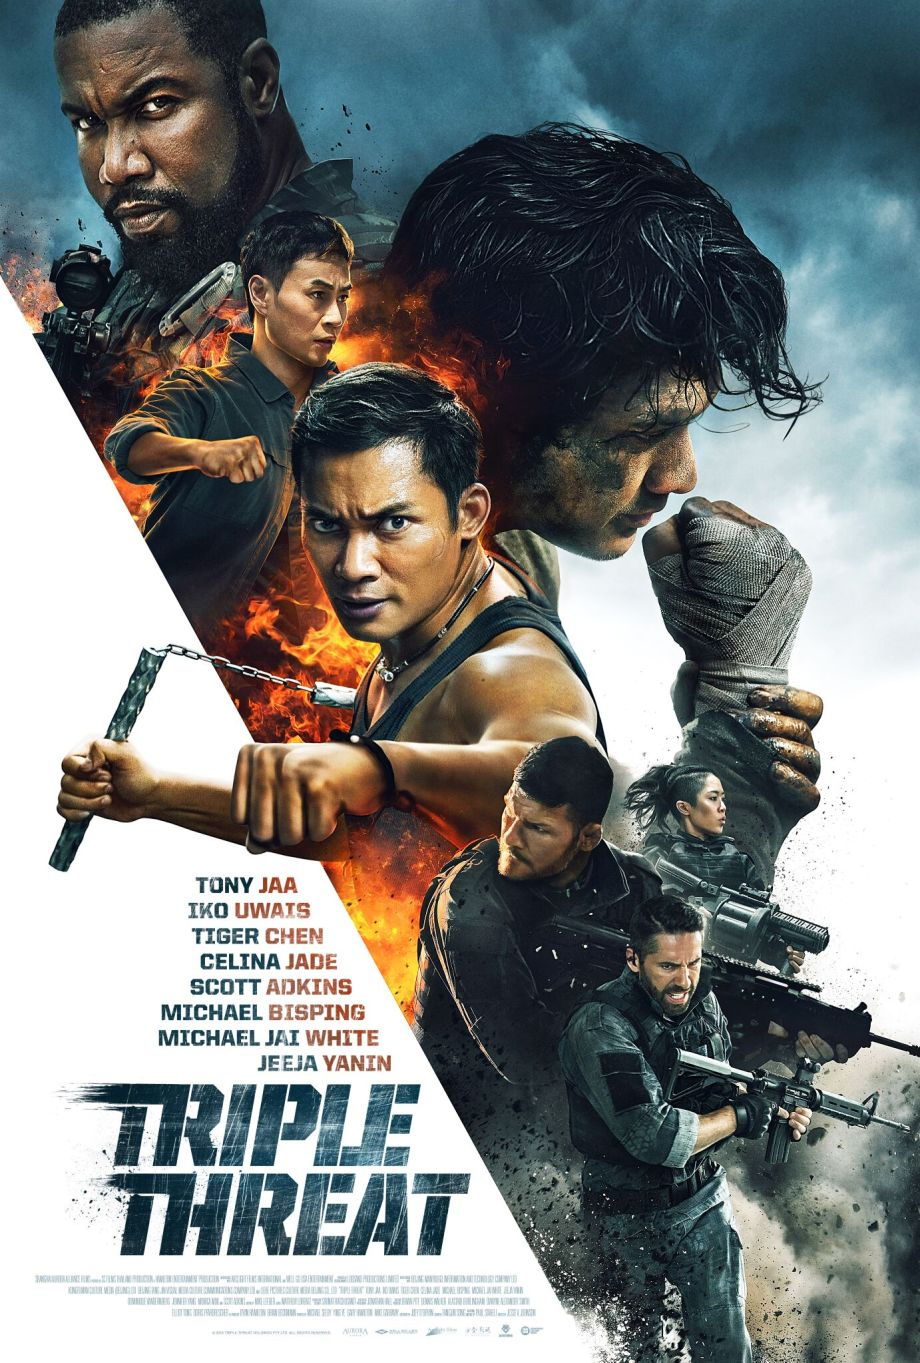 Triple threat Poster.jpg